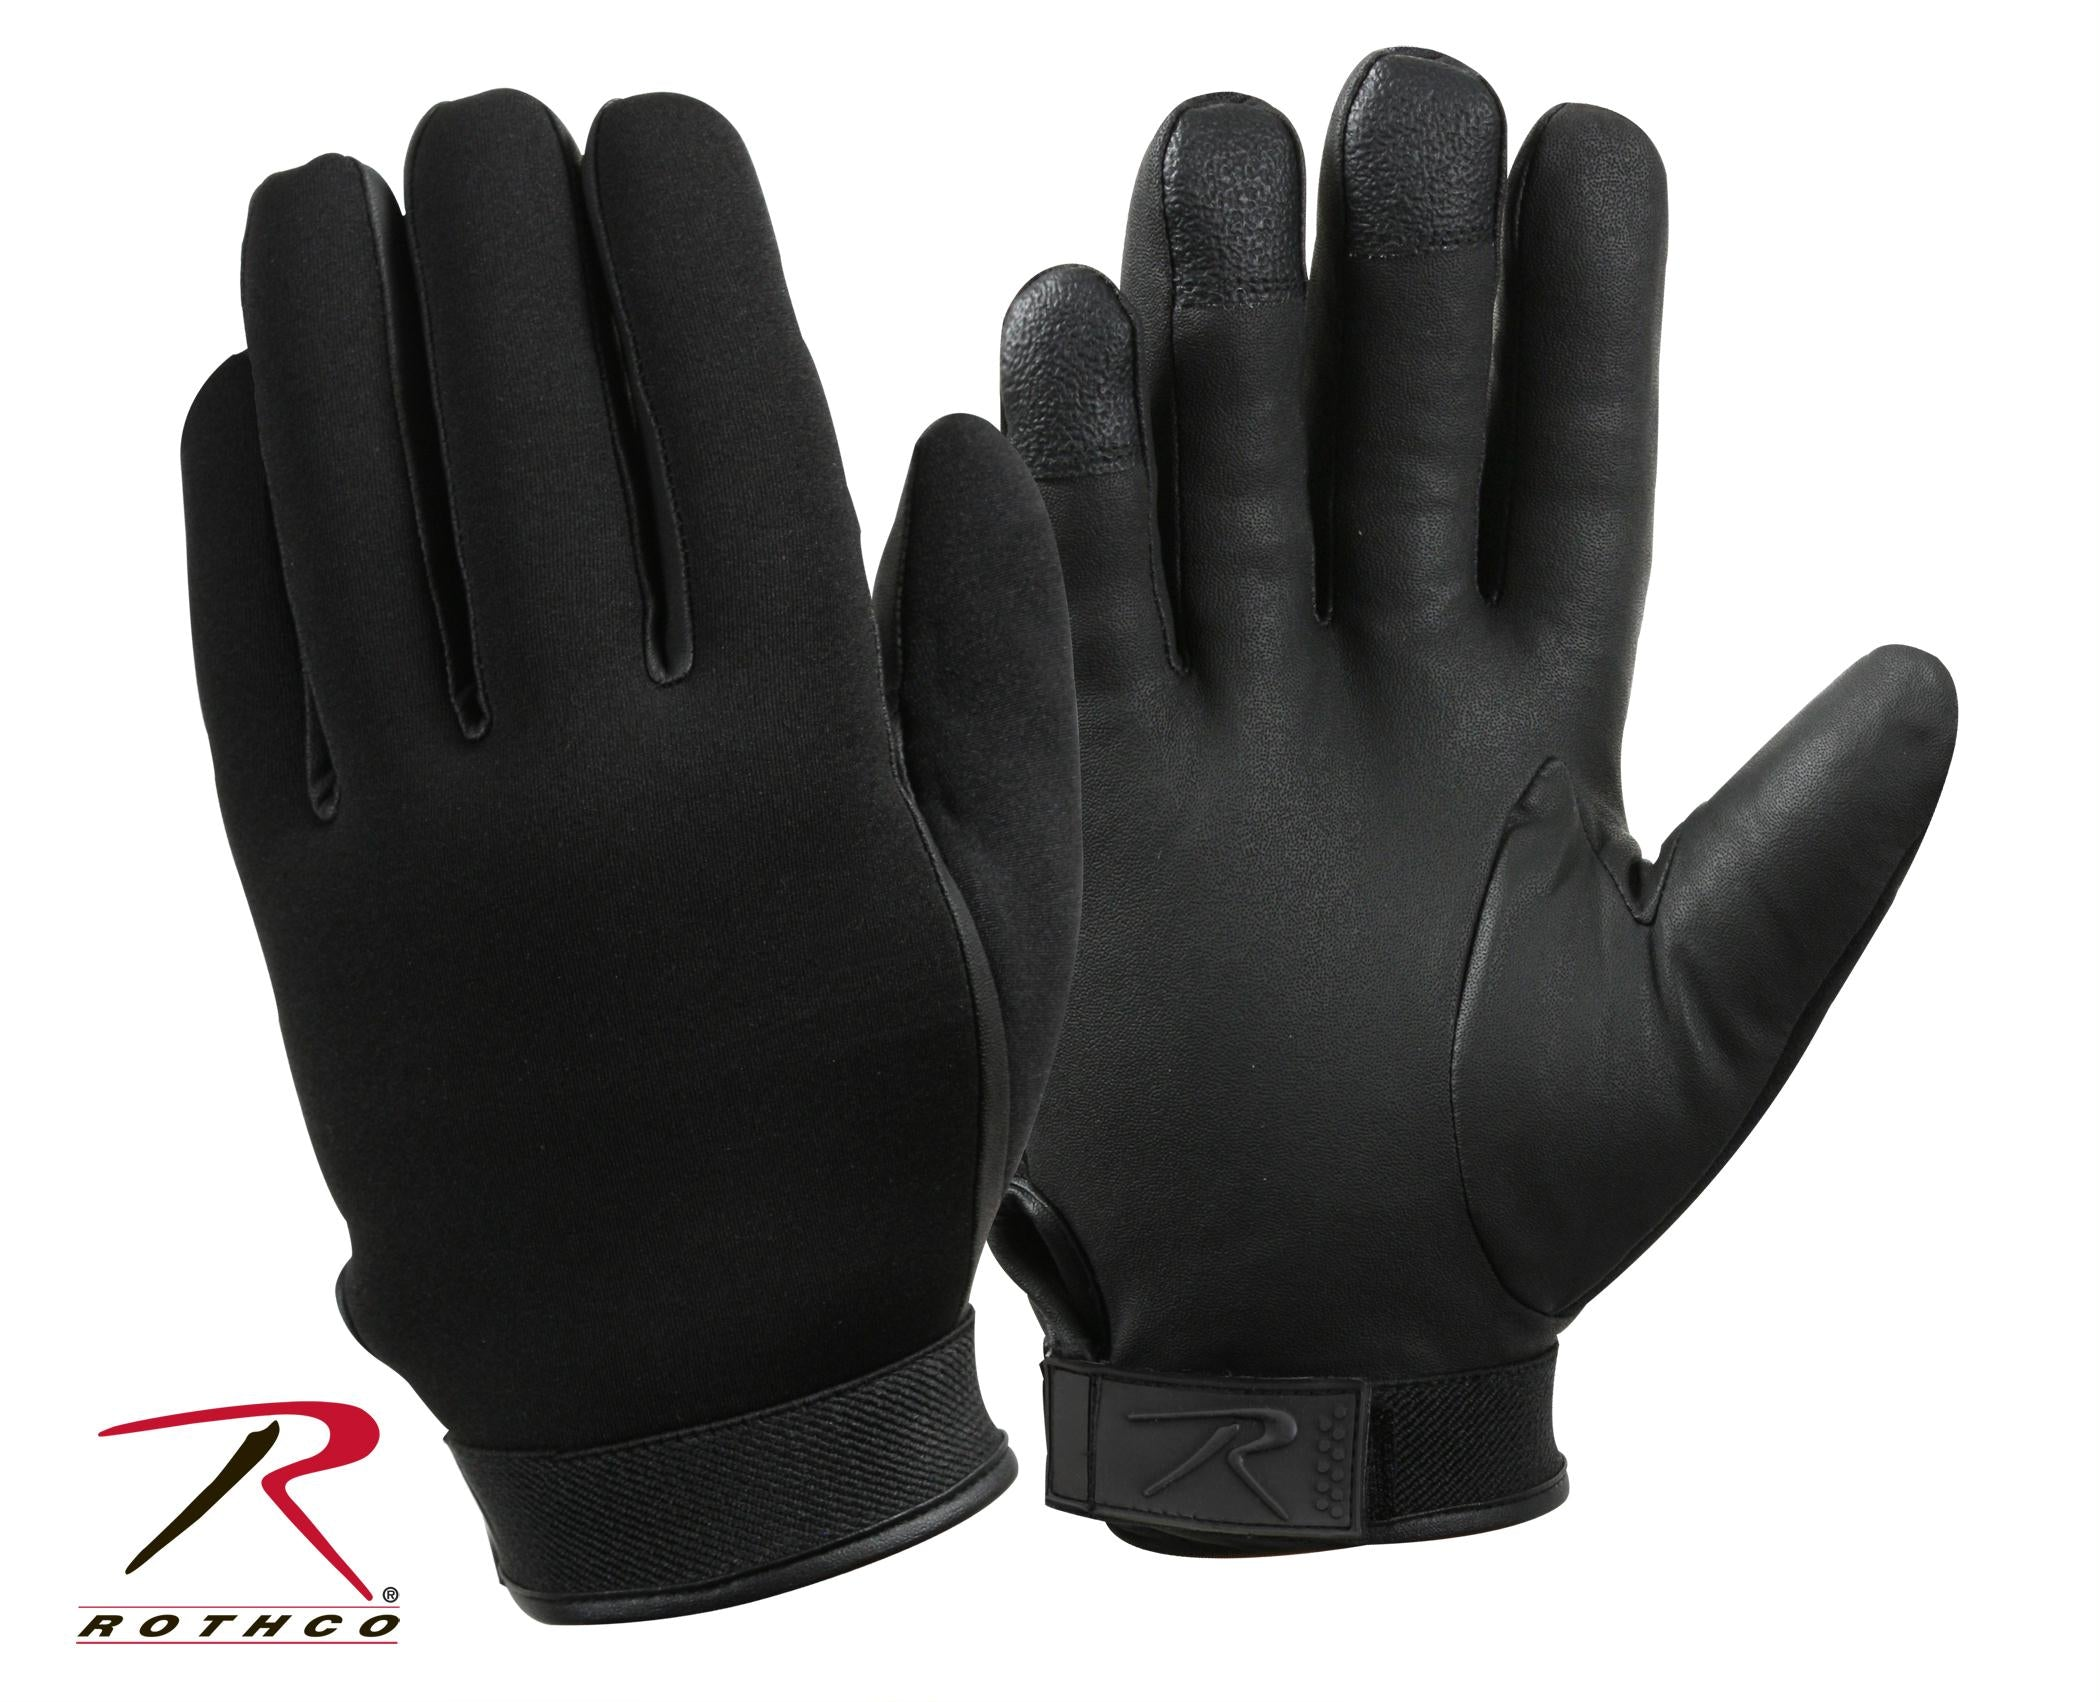 Rothco Waterproof Insulated Neoprene Duty Gloves - Black / 2XL